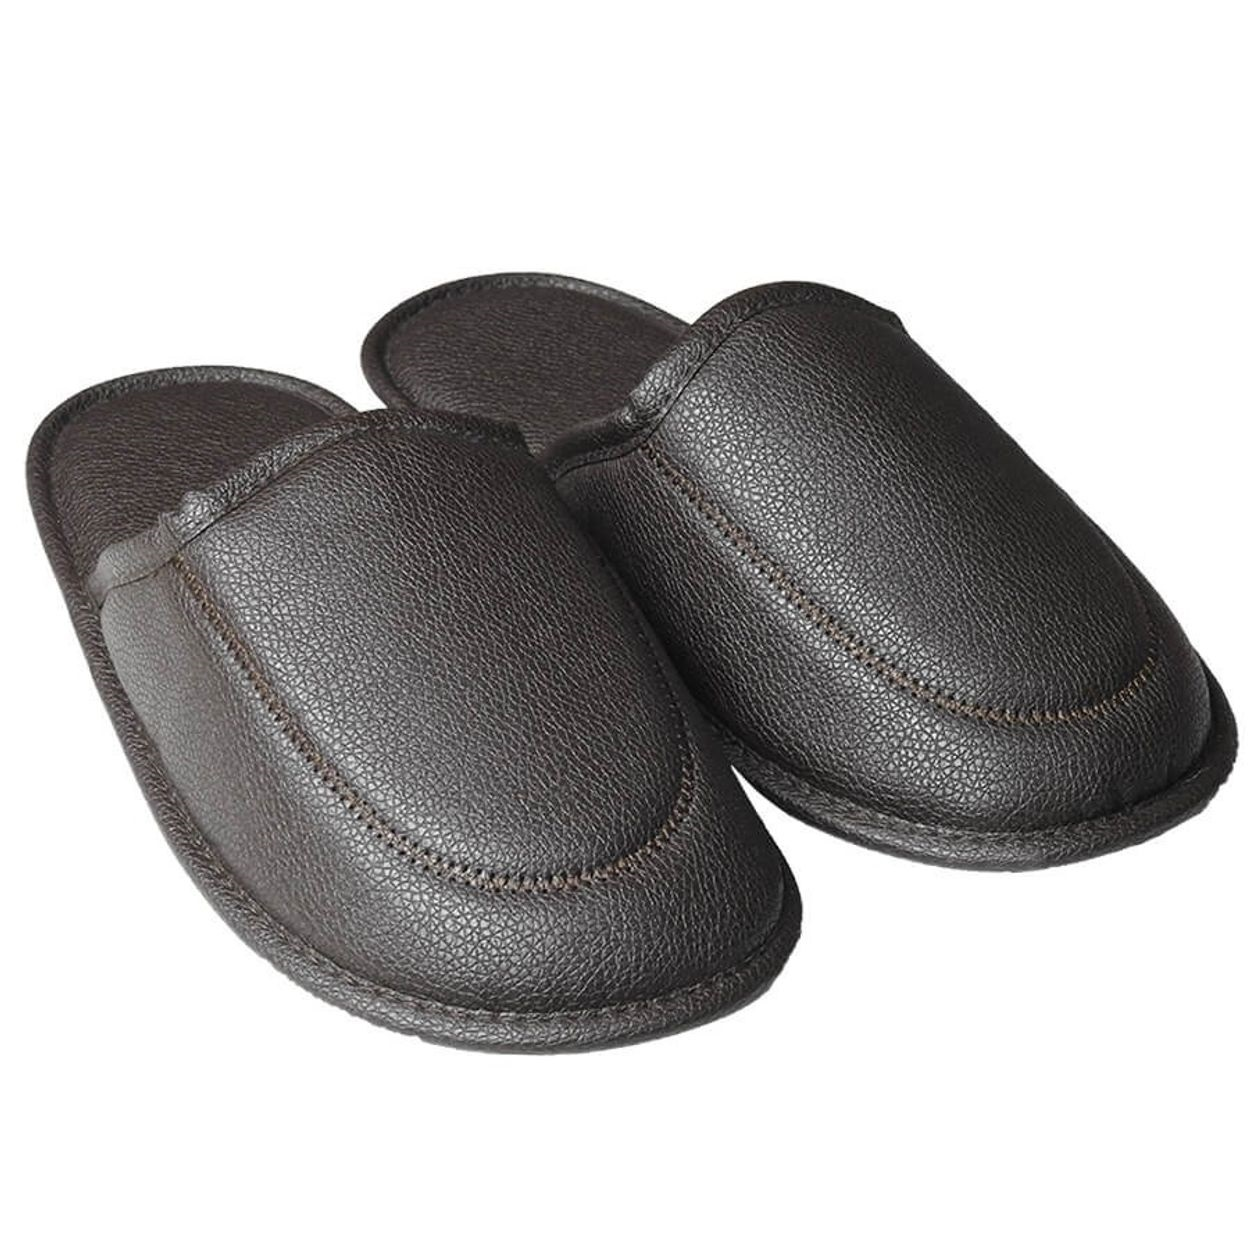 Chinelo Slippers Donna Laço Man Marrom 39/40